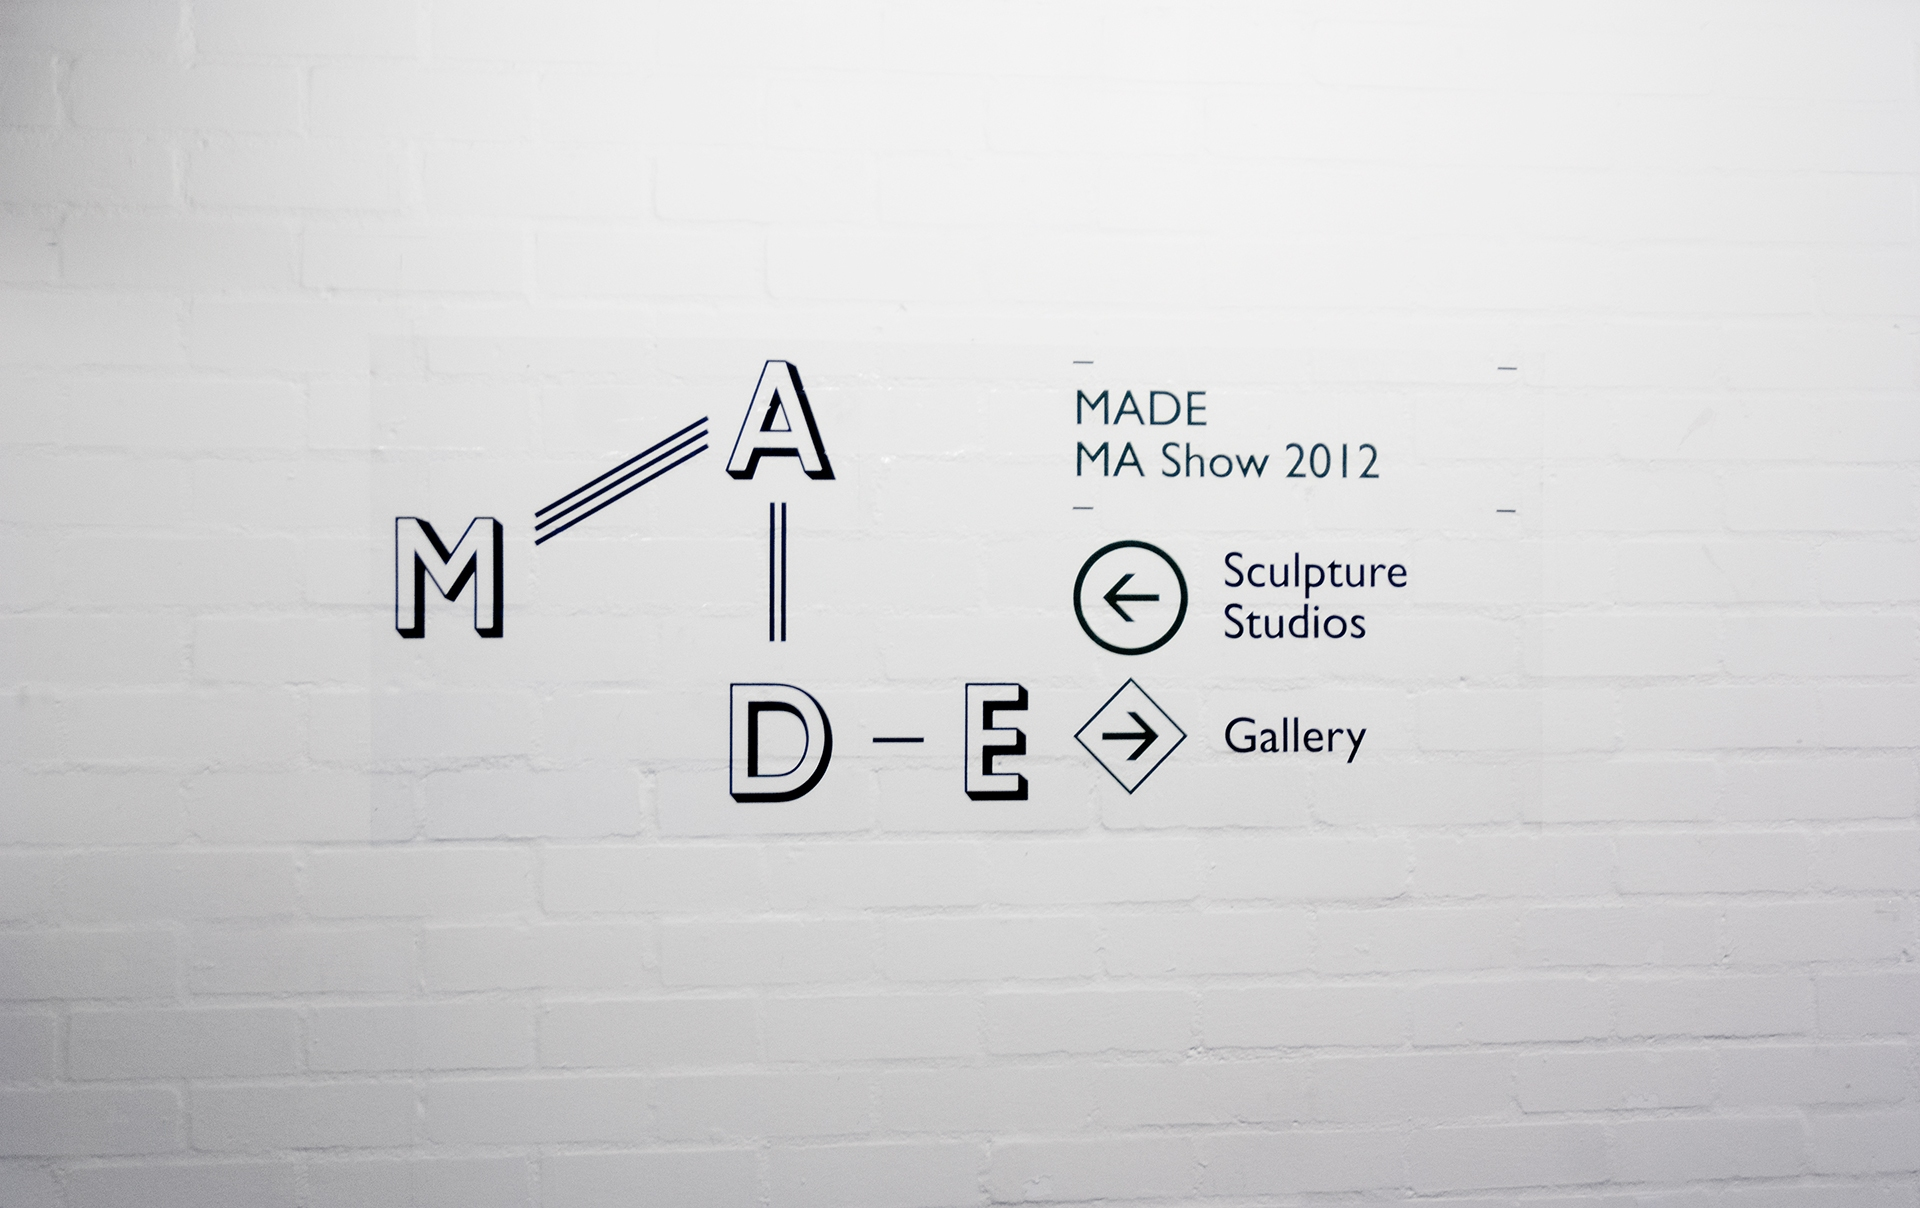 Wall lettering & exhibiiton signage for the UCA MA Show 2012